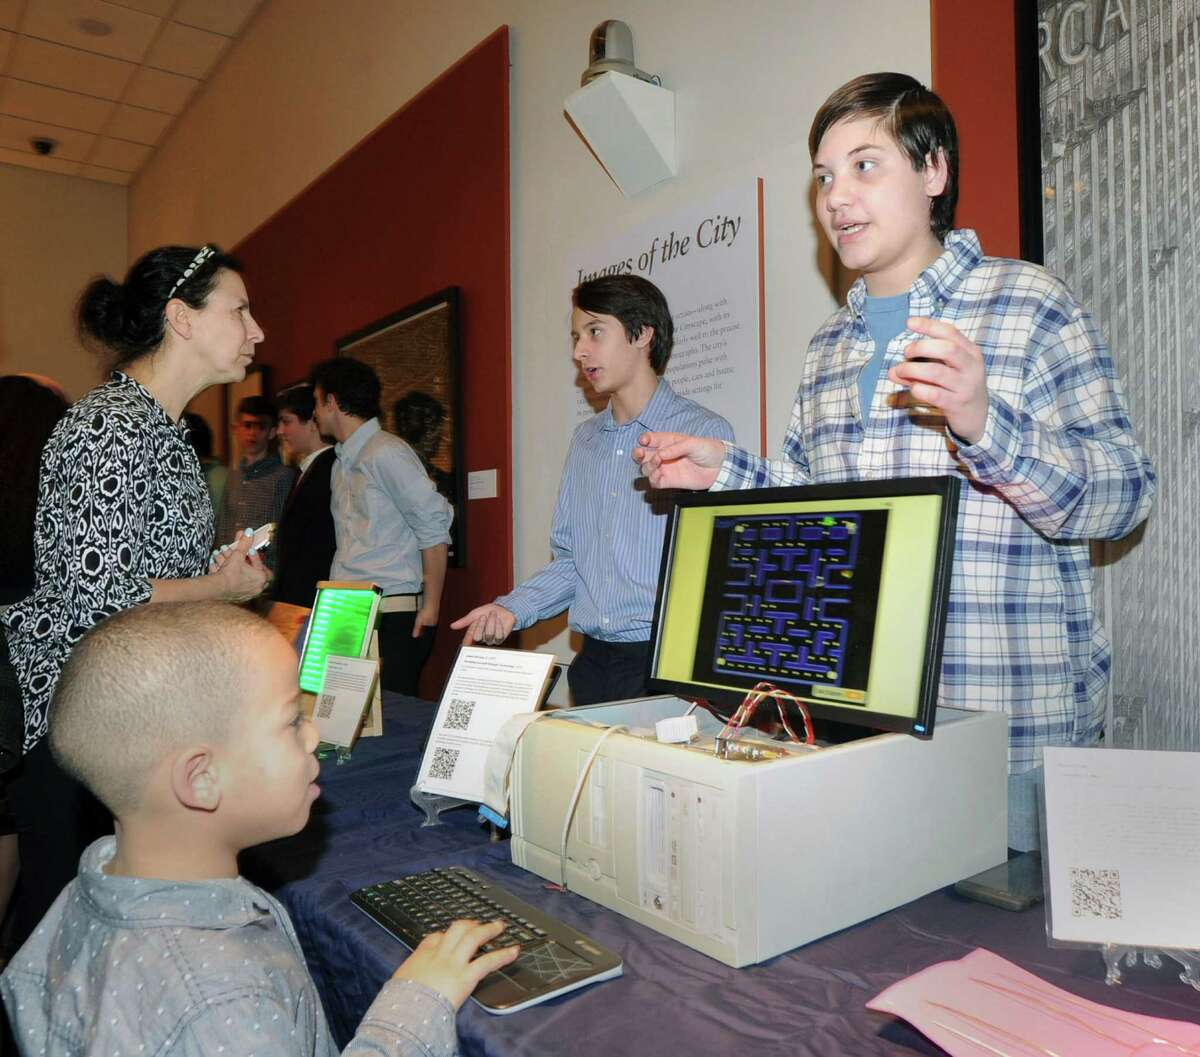 """Greenwich High School sophomore James Bonney, 16, right, explains his computer game """"Modernism Pacman"""" to a group of people during the exhibition of the Humanities and Modernism projects created by the Greenwich High School sophomores who are members of the Innovation Lab program at the Bruce Museum in Greenwich, Conn., Tuesday night, Feb. 2, 2016. Innovation Lab member Bonney said he made the game from his father's old computer and logic board. At left, seated, playing the game is Julian Curtiss School student Collin Batts, 6. According to Julie Faryniarz, executive director of the Greenwich Alliance for Education, research and development for the GHS Innovation Lab was funded through a grant provided by the Greenwich Alliance Reaching Out Grants program."""